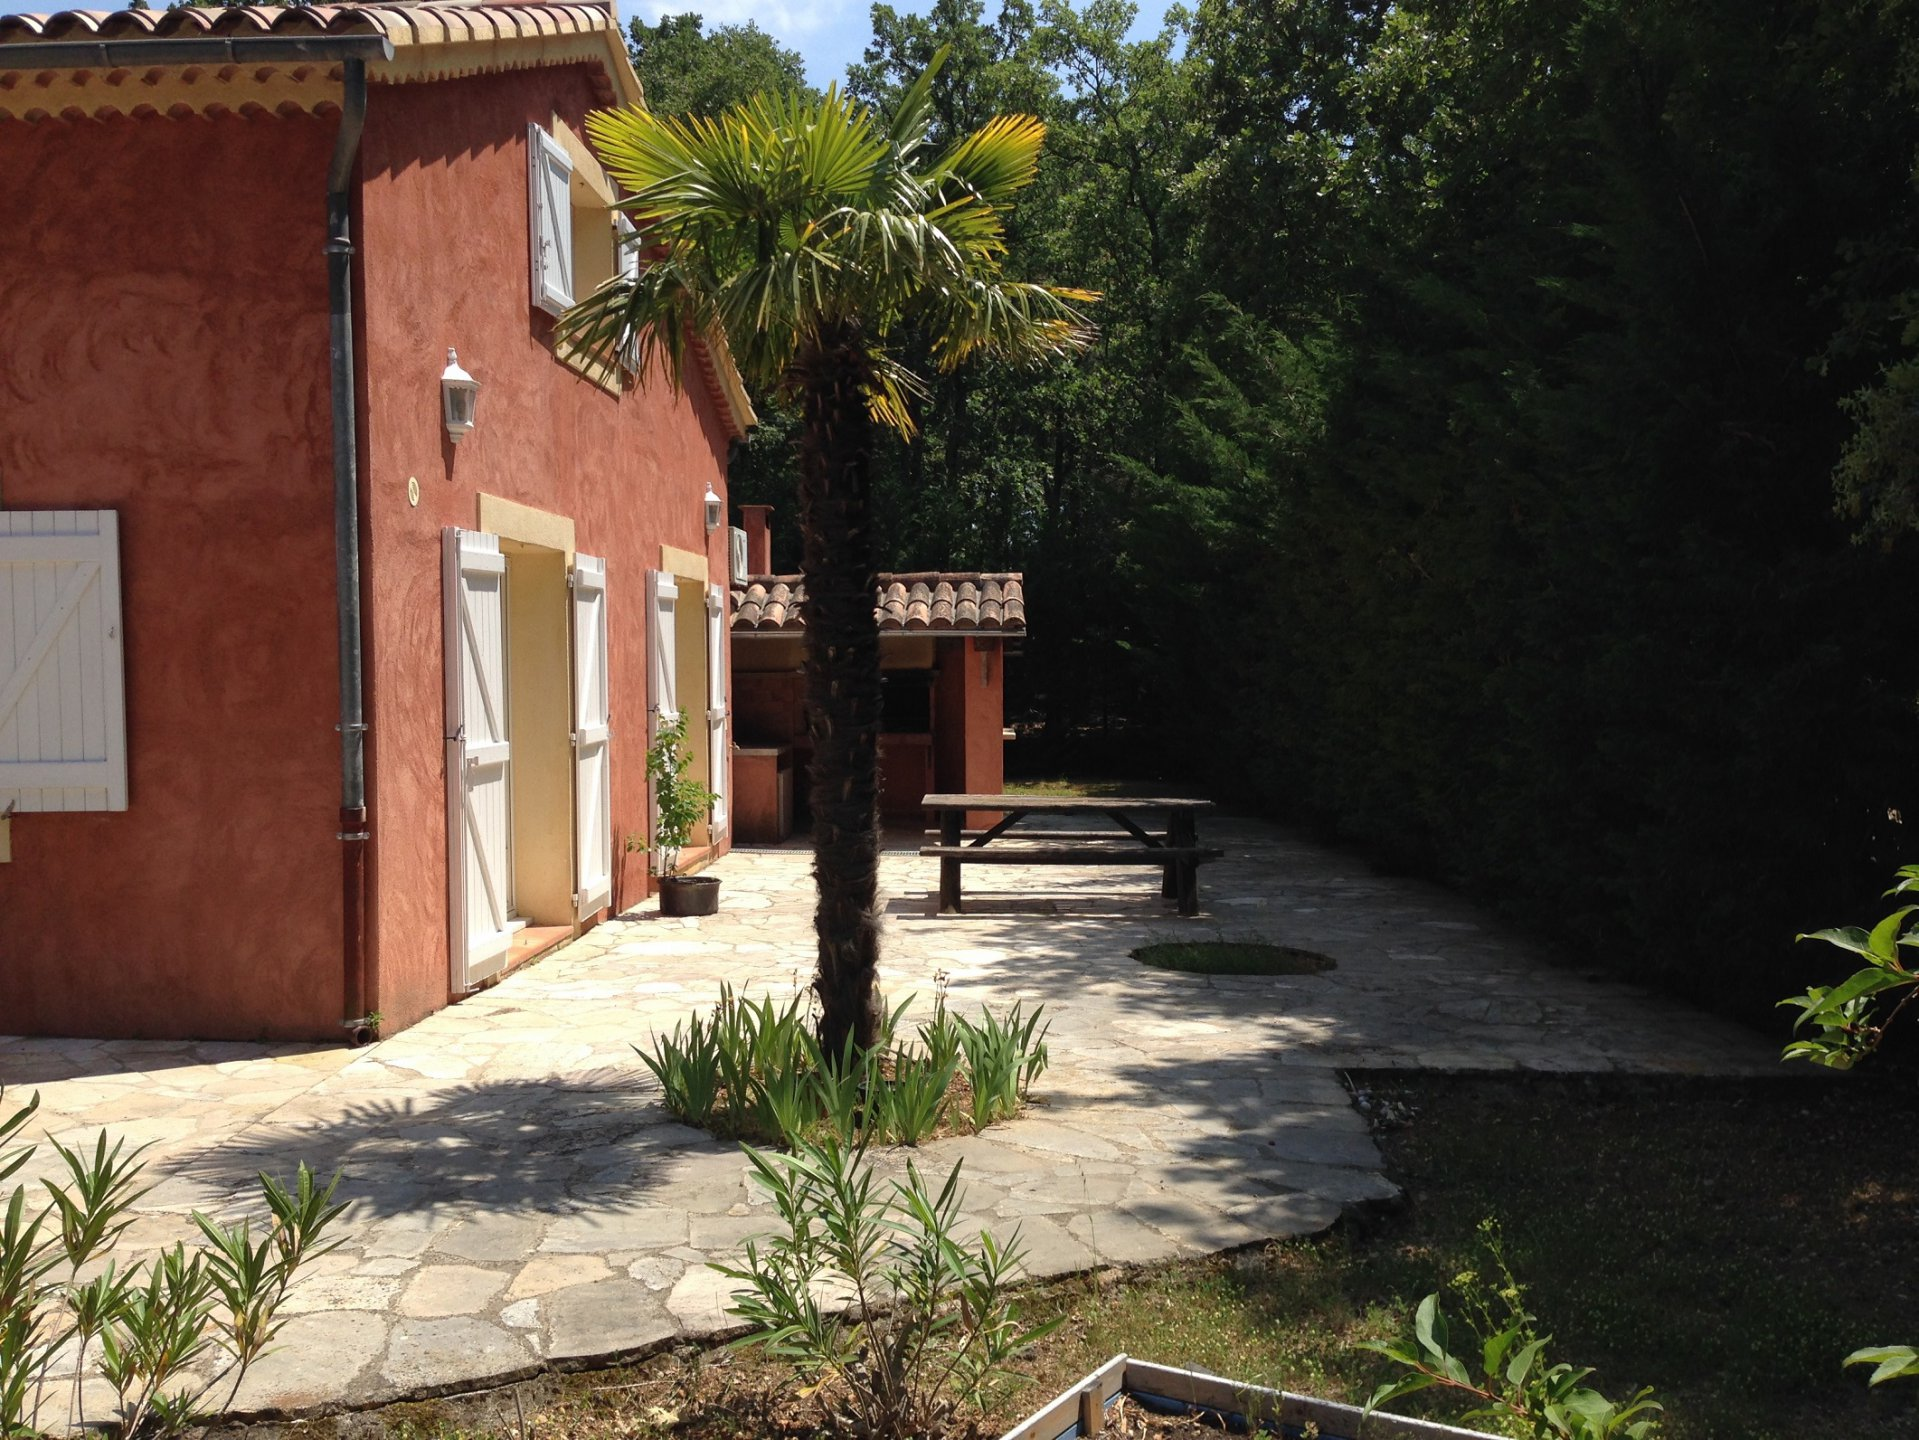 Nice villa 150 m²+ swimming pool on a fenced plot of land 1778m²